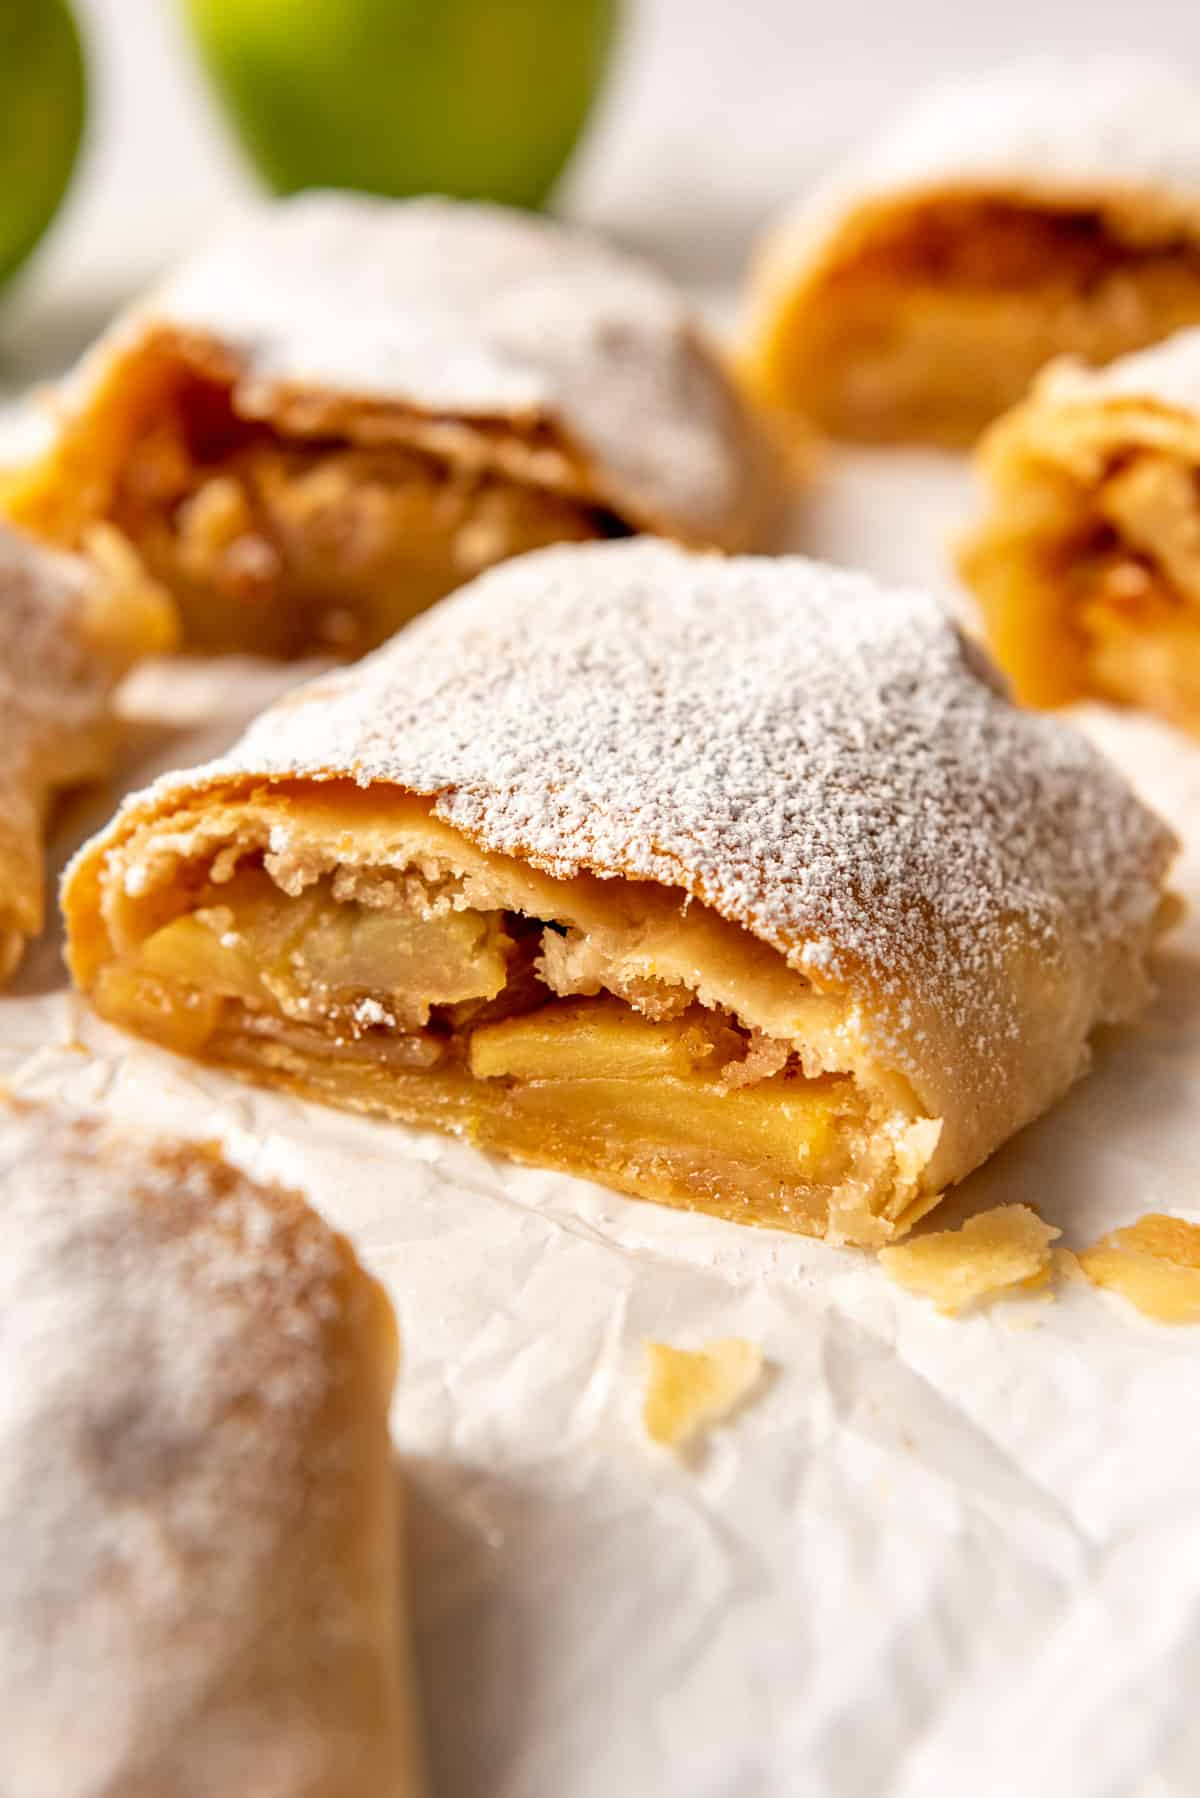 flaky homemade pastry dusted with powdered sugar around an apple filling on a piece of white parchment paper.